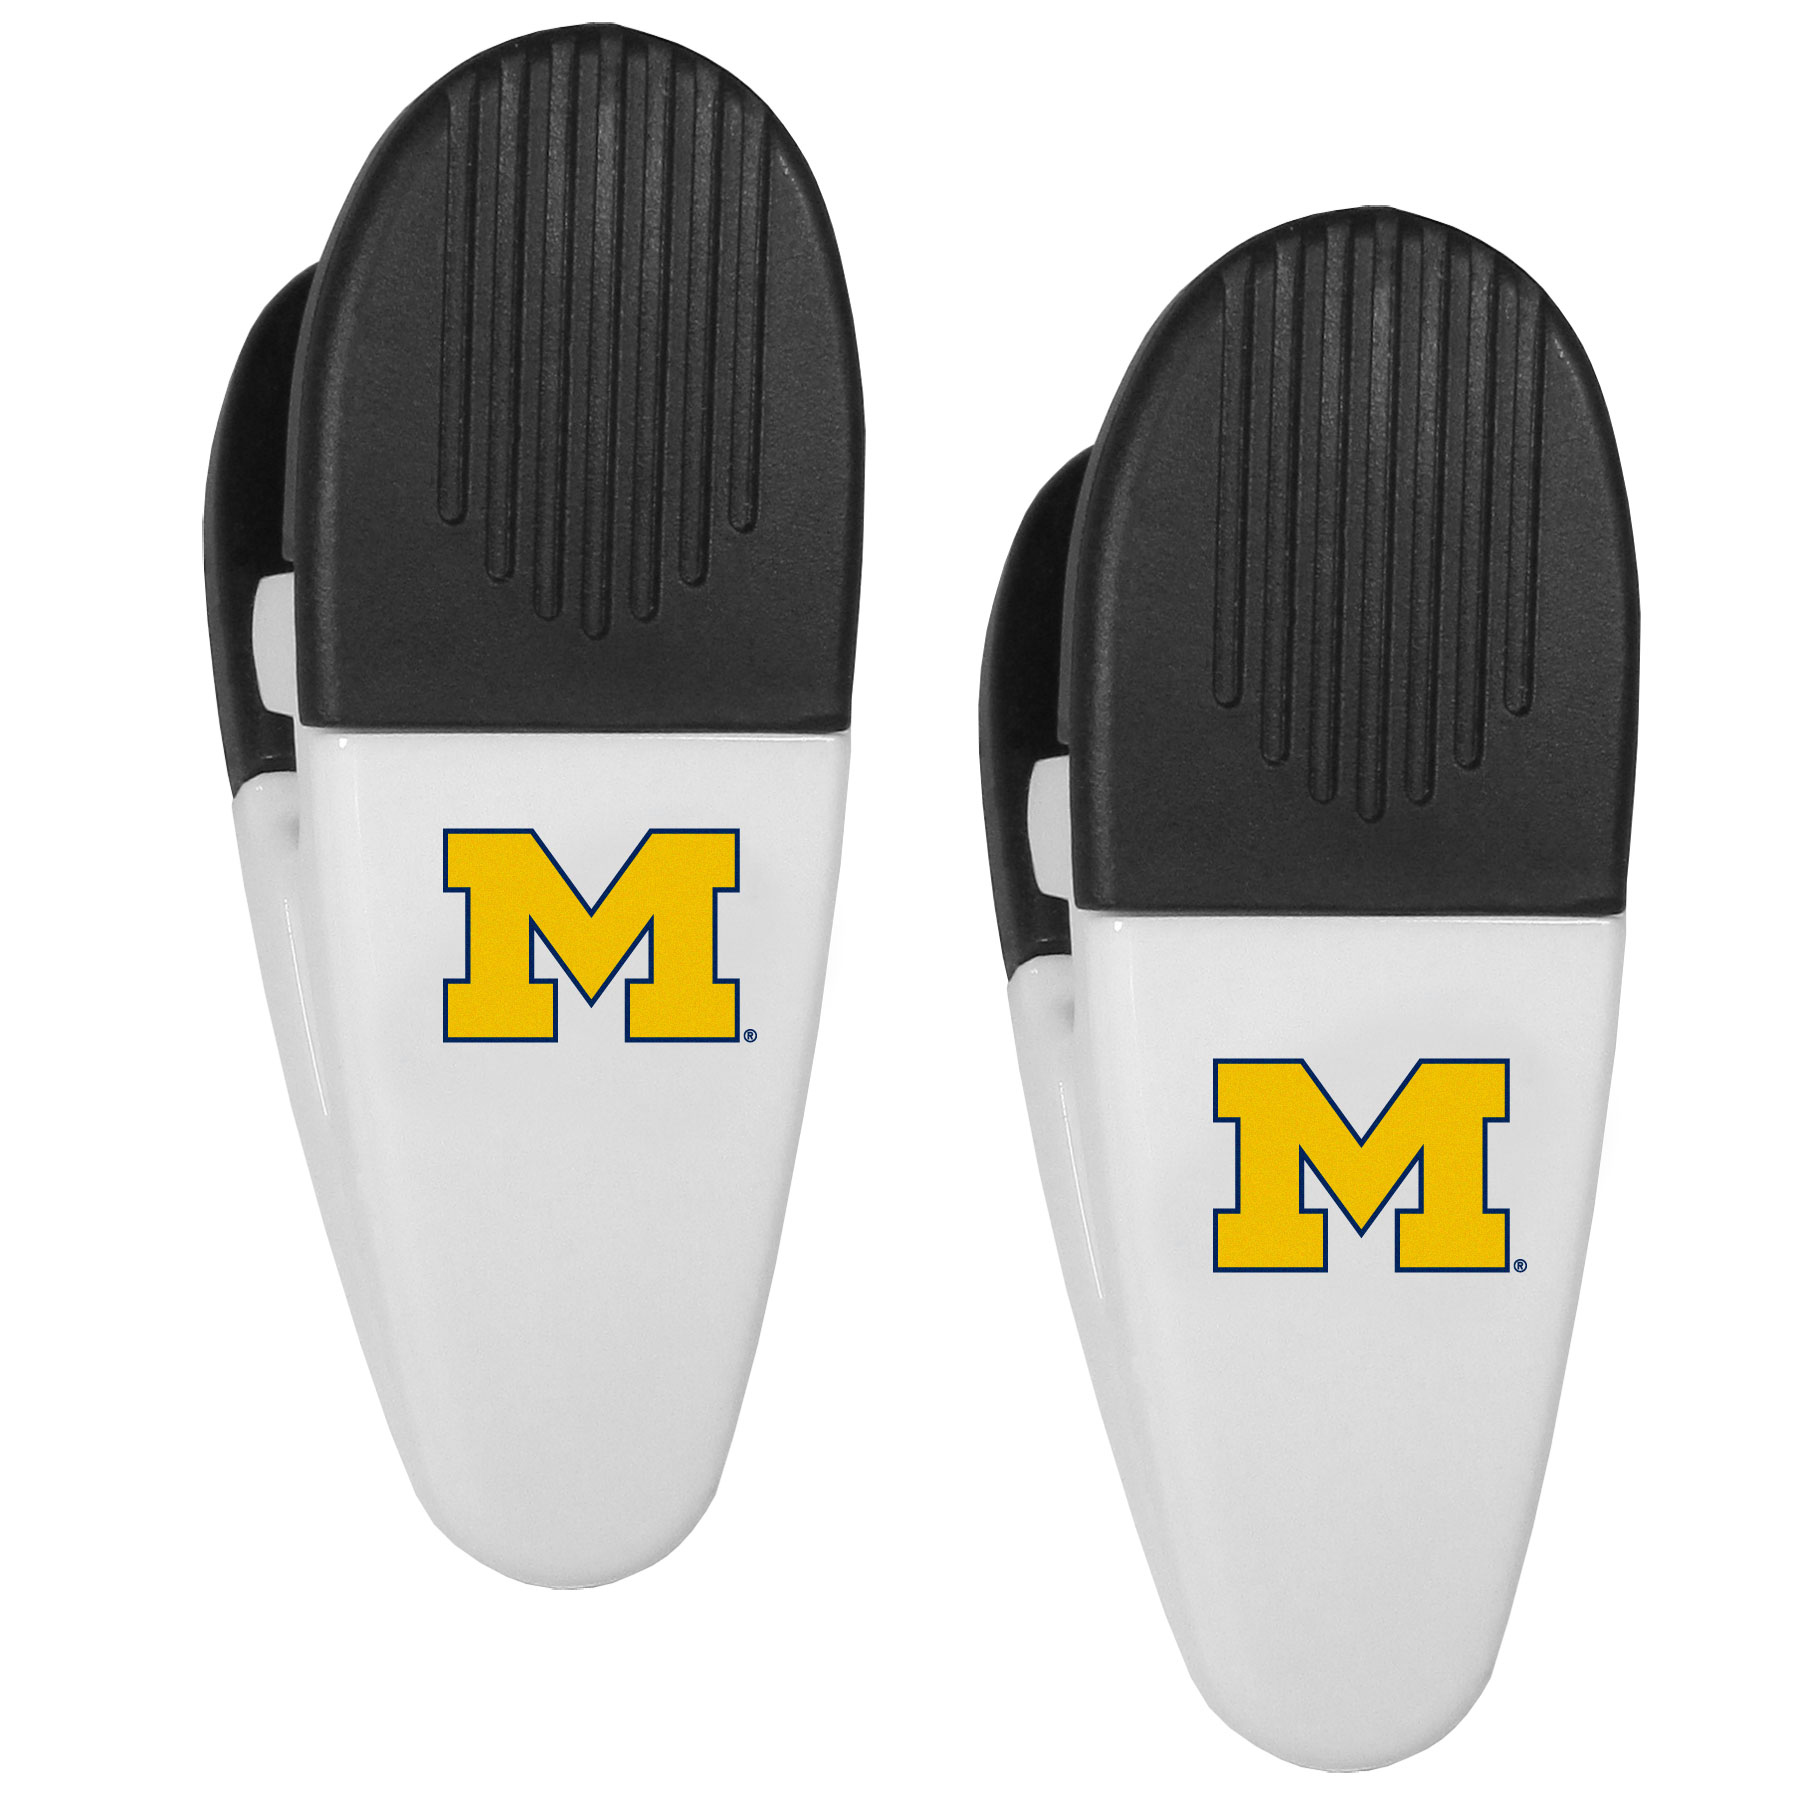 Michigan Wolverines Mini Chip Clip Magnets, 2 pk - Our Michigan Wolverines chip clip magnets feature a crisp team logo on the front of the clip. The clip is perfect for sealing chips for freshness and with the powerful magnet on the back it can be used to attach notes to the fridge or hanging your child's artwork. Set of 2 magnet clips, each clip is 3.5 inches tall and 1.25 inch wide.